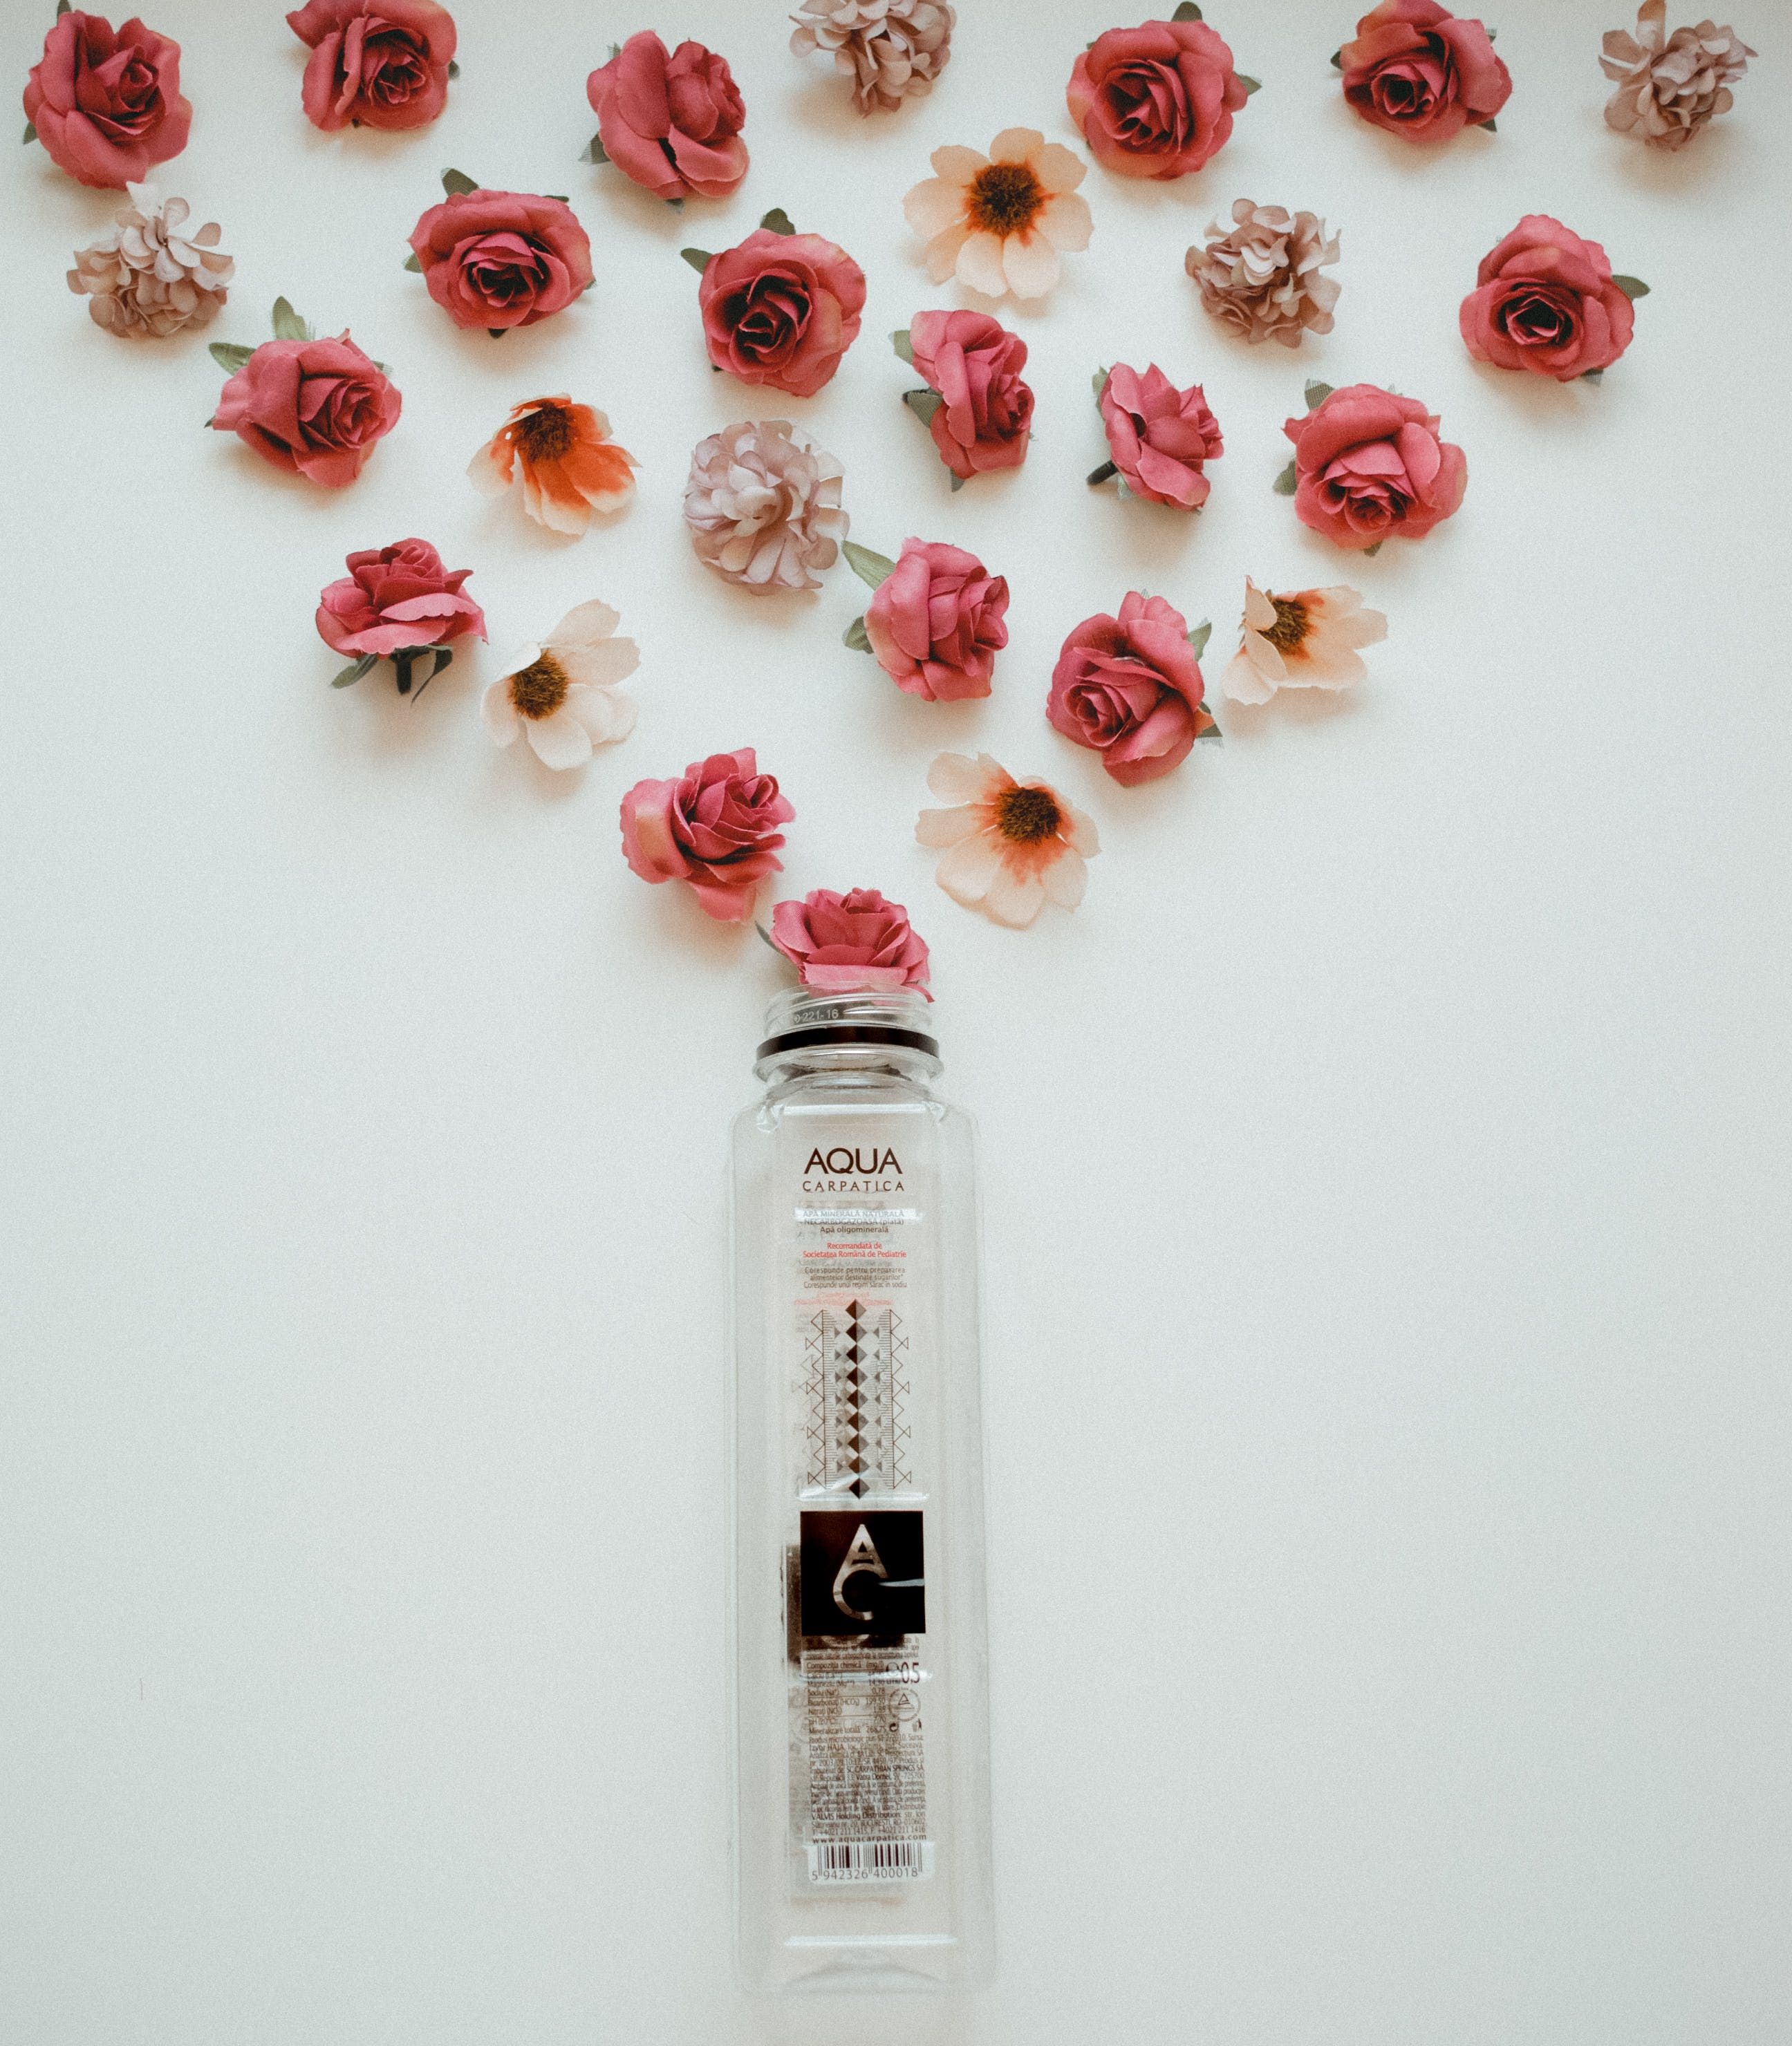 Aqua Fragrance Bottle and Roses Wall Decor